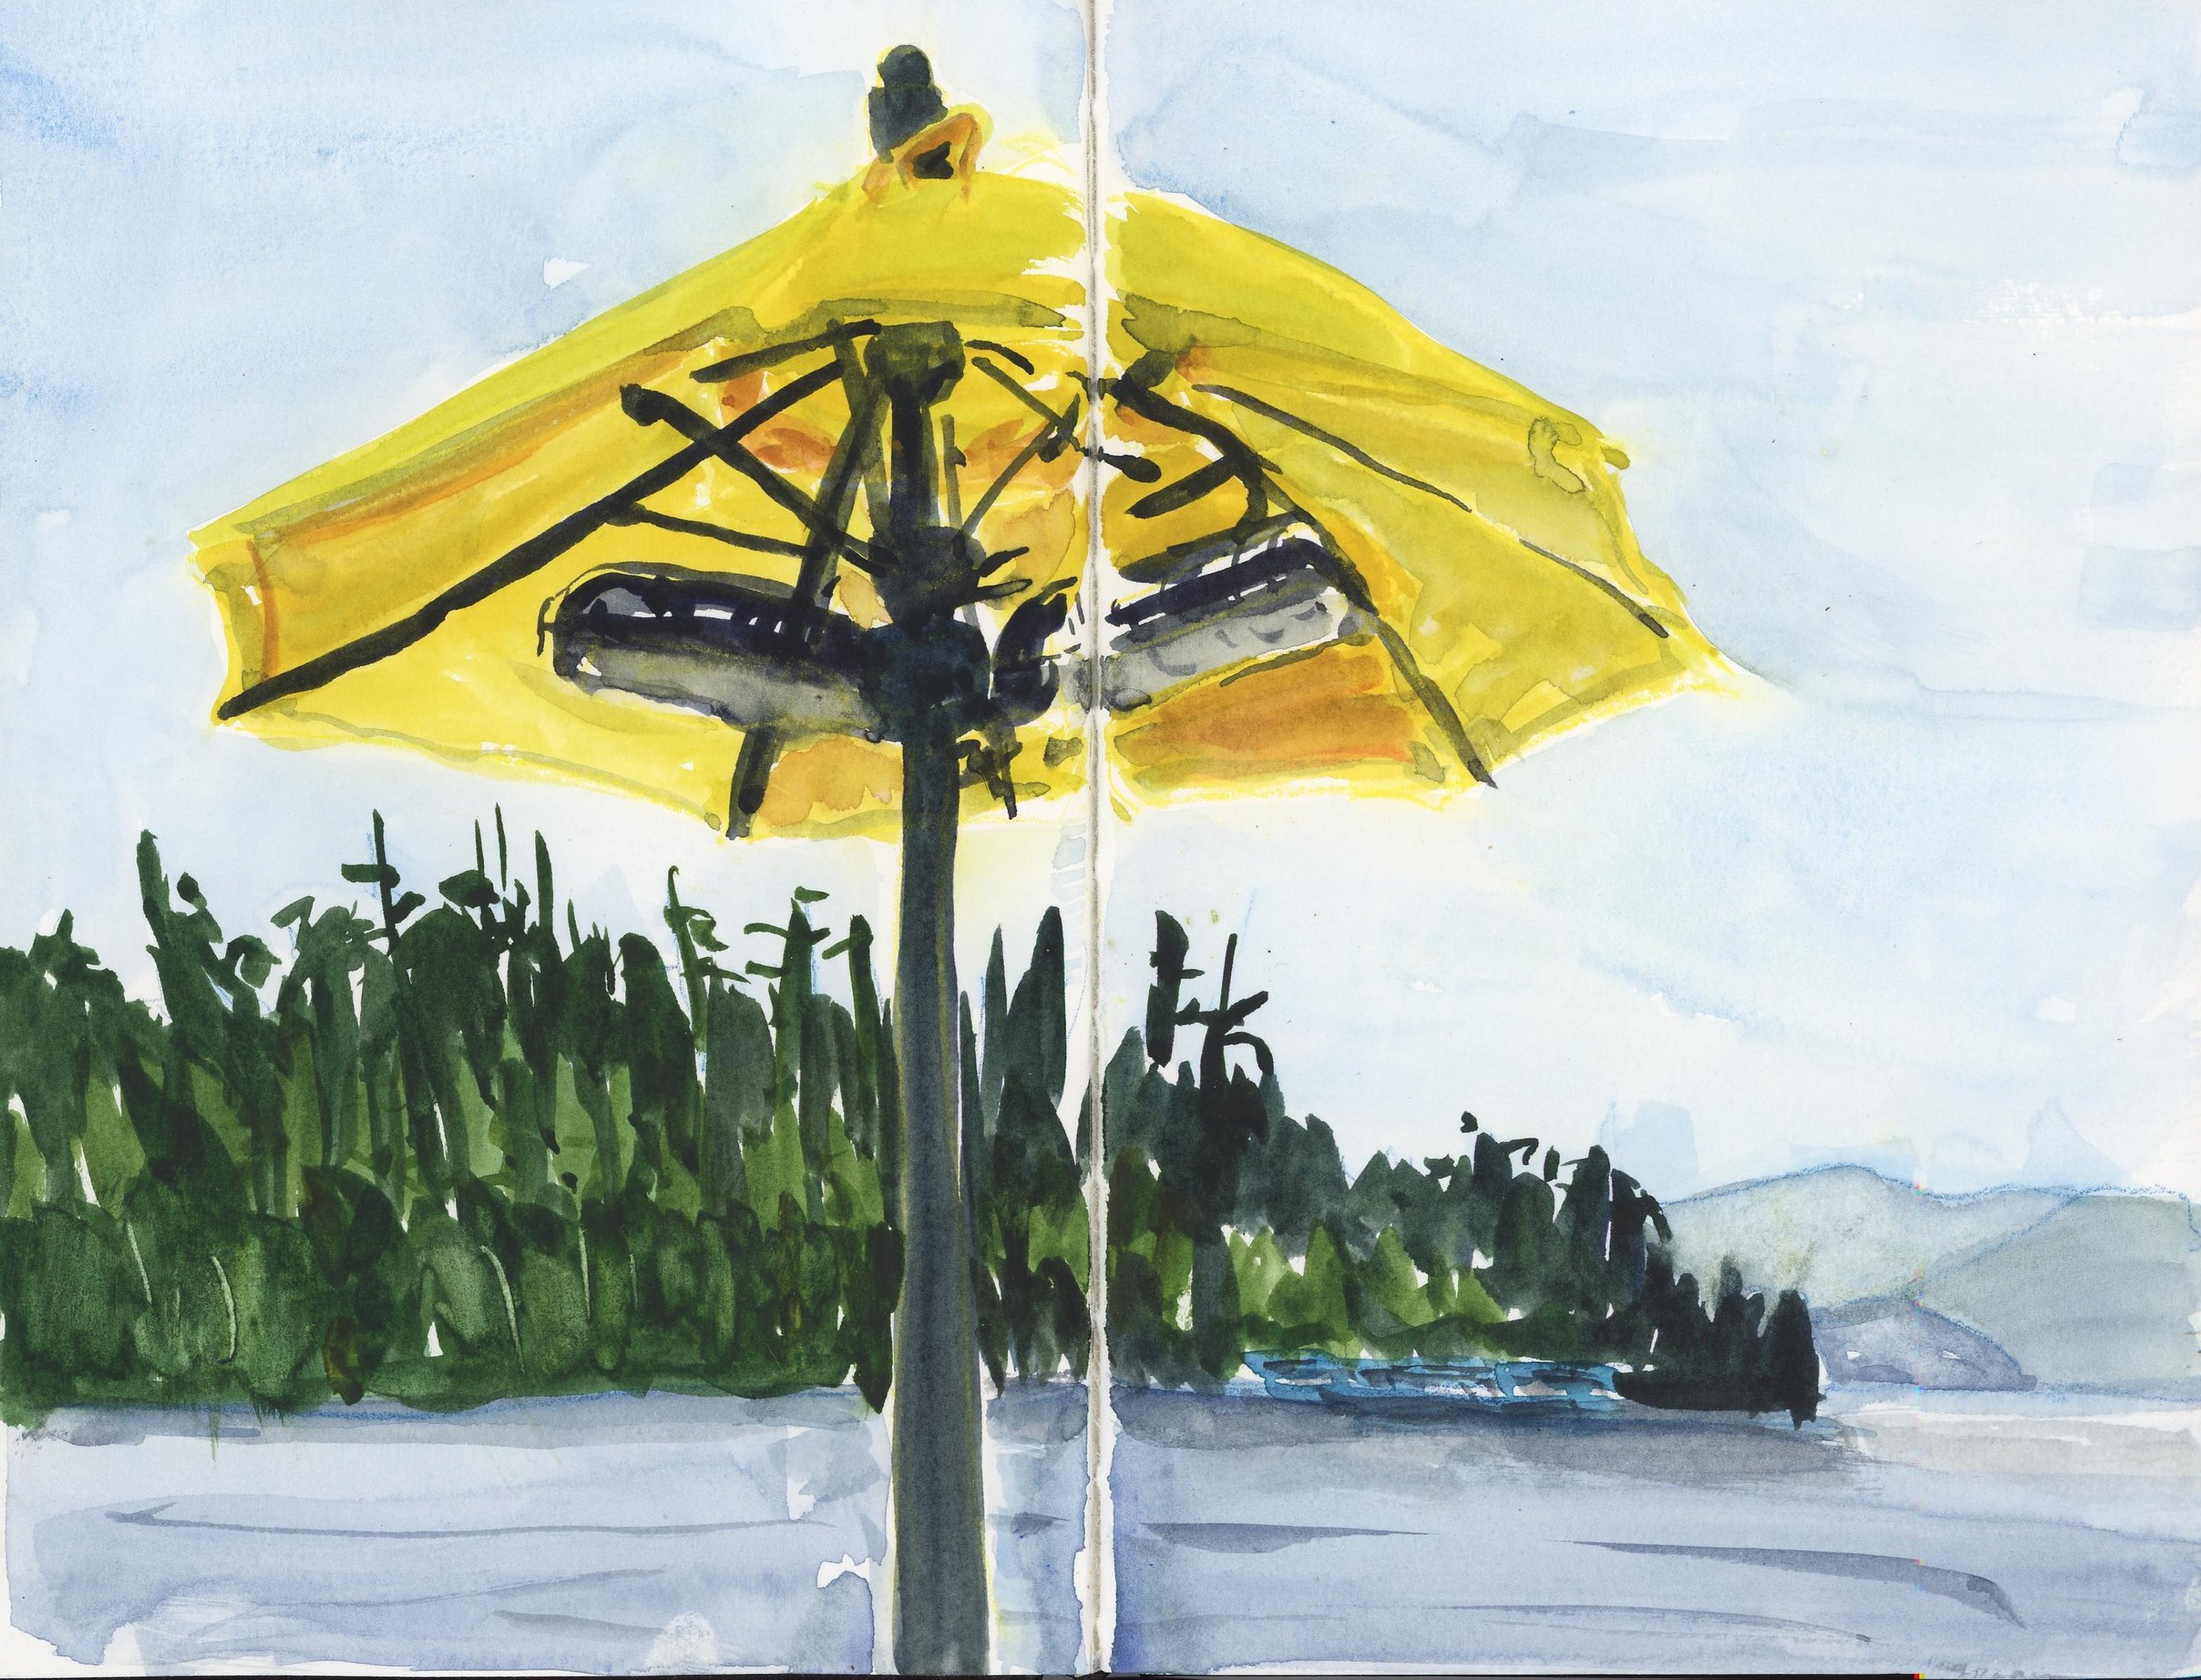 Yellow umbrellas on the deck while eating at Cavanaugh's.